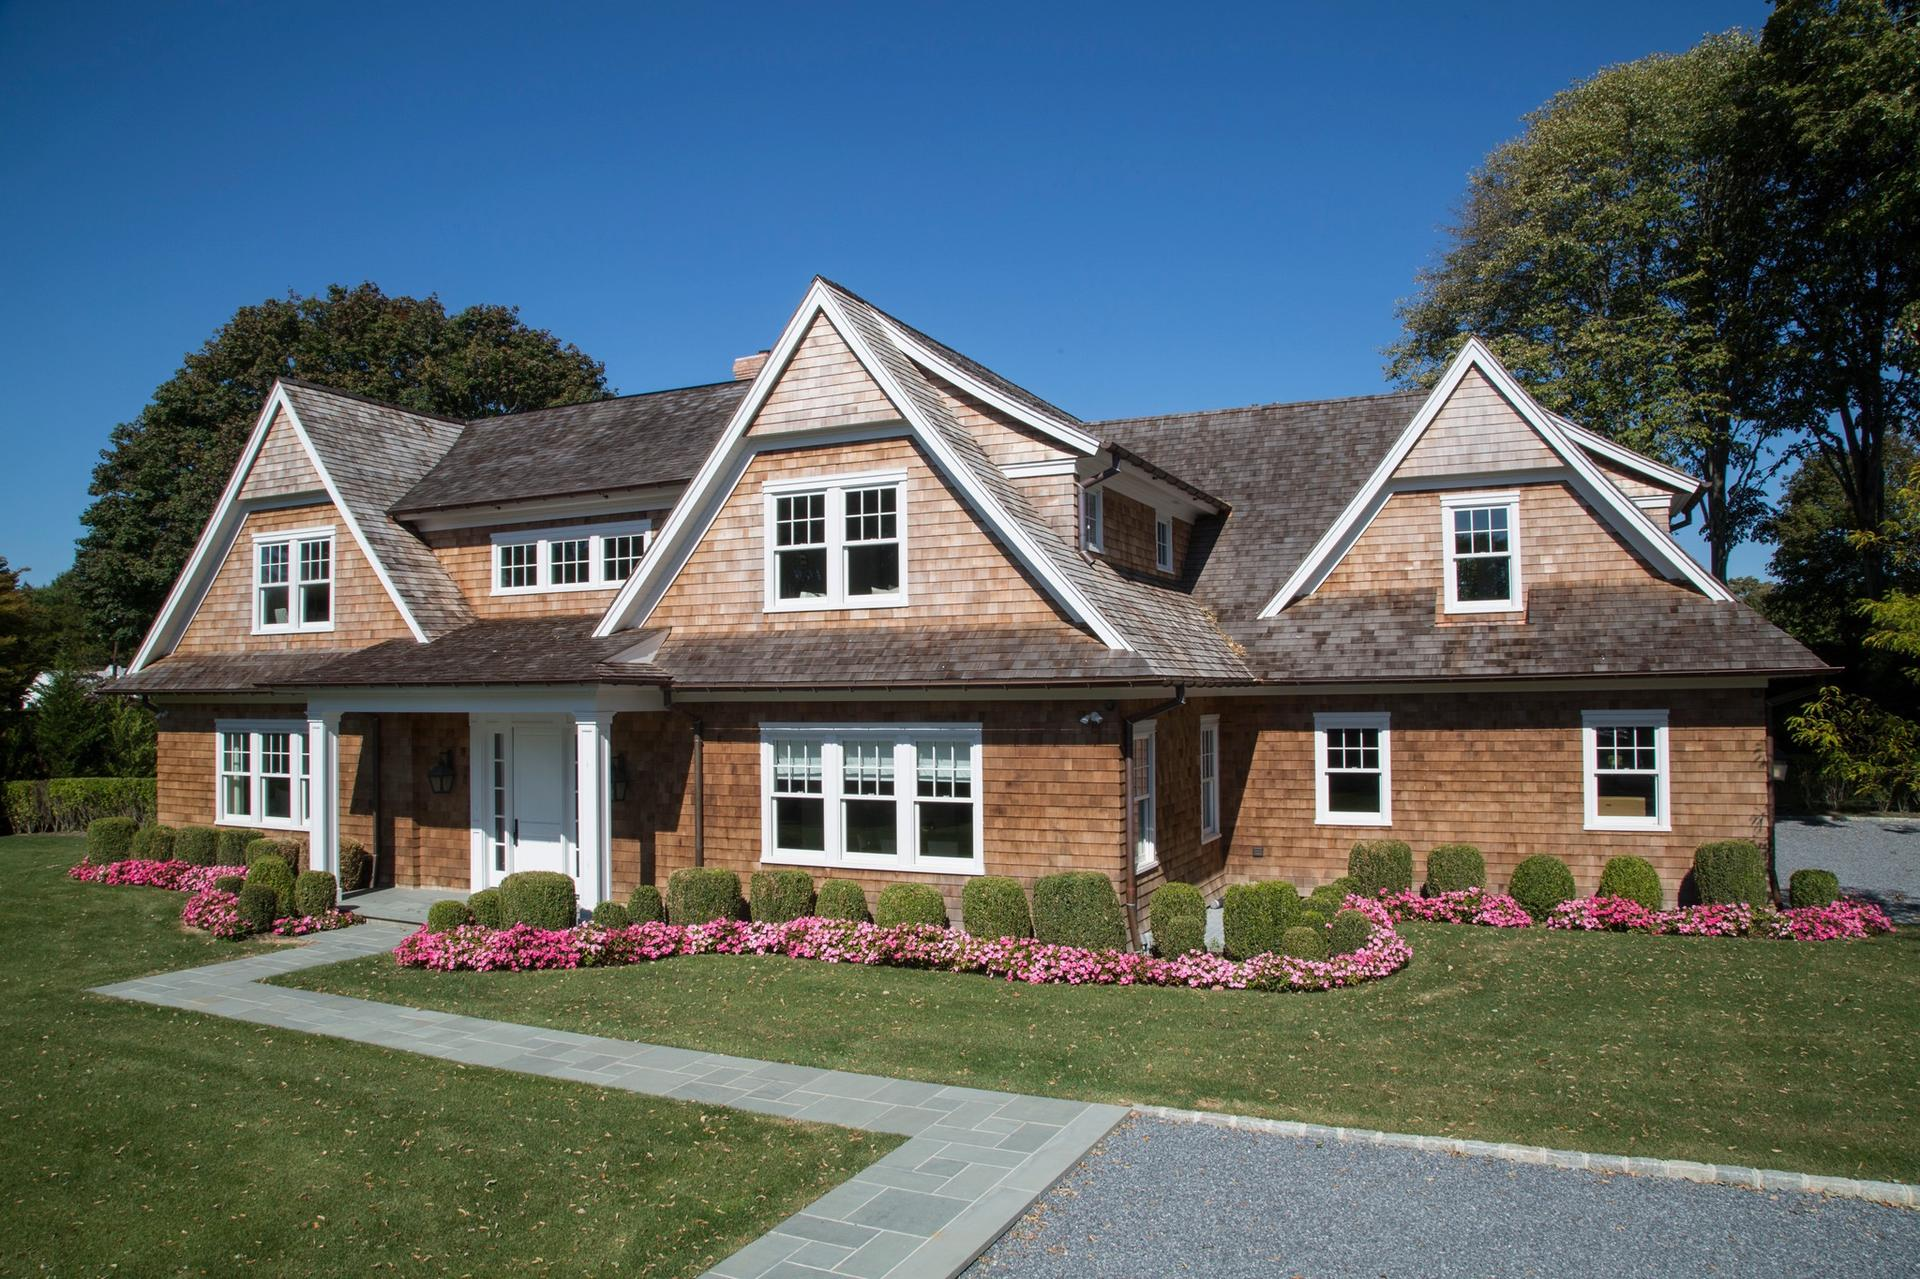 Single Family Home for Sale at Southampton Village Southampton, New York